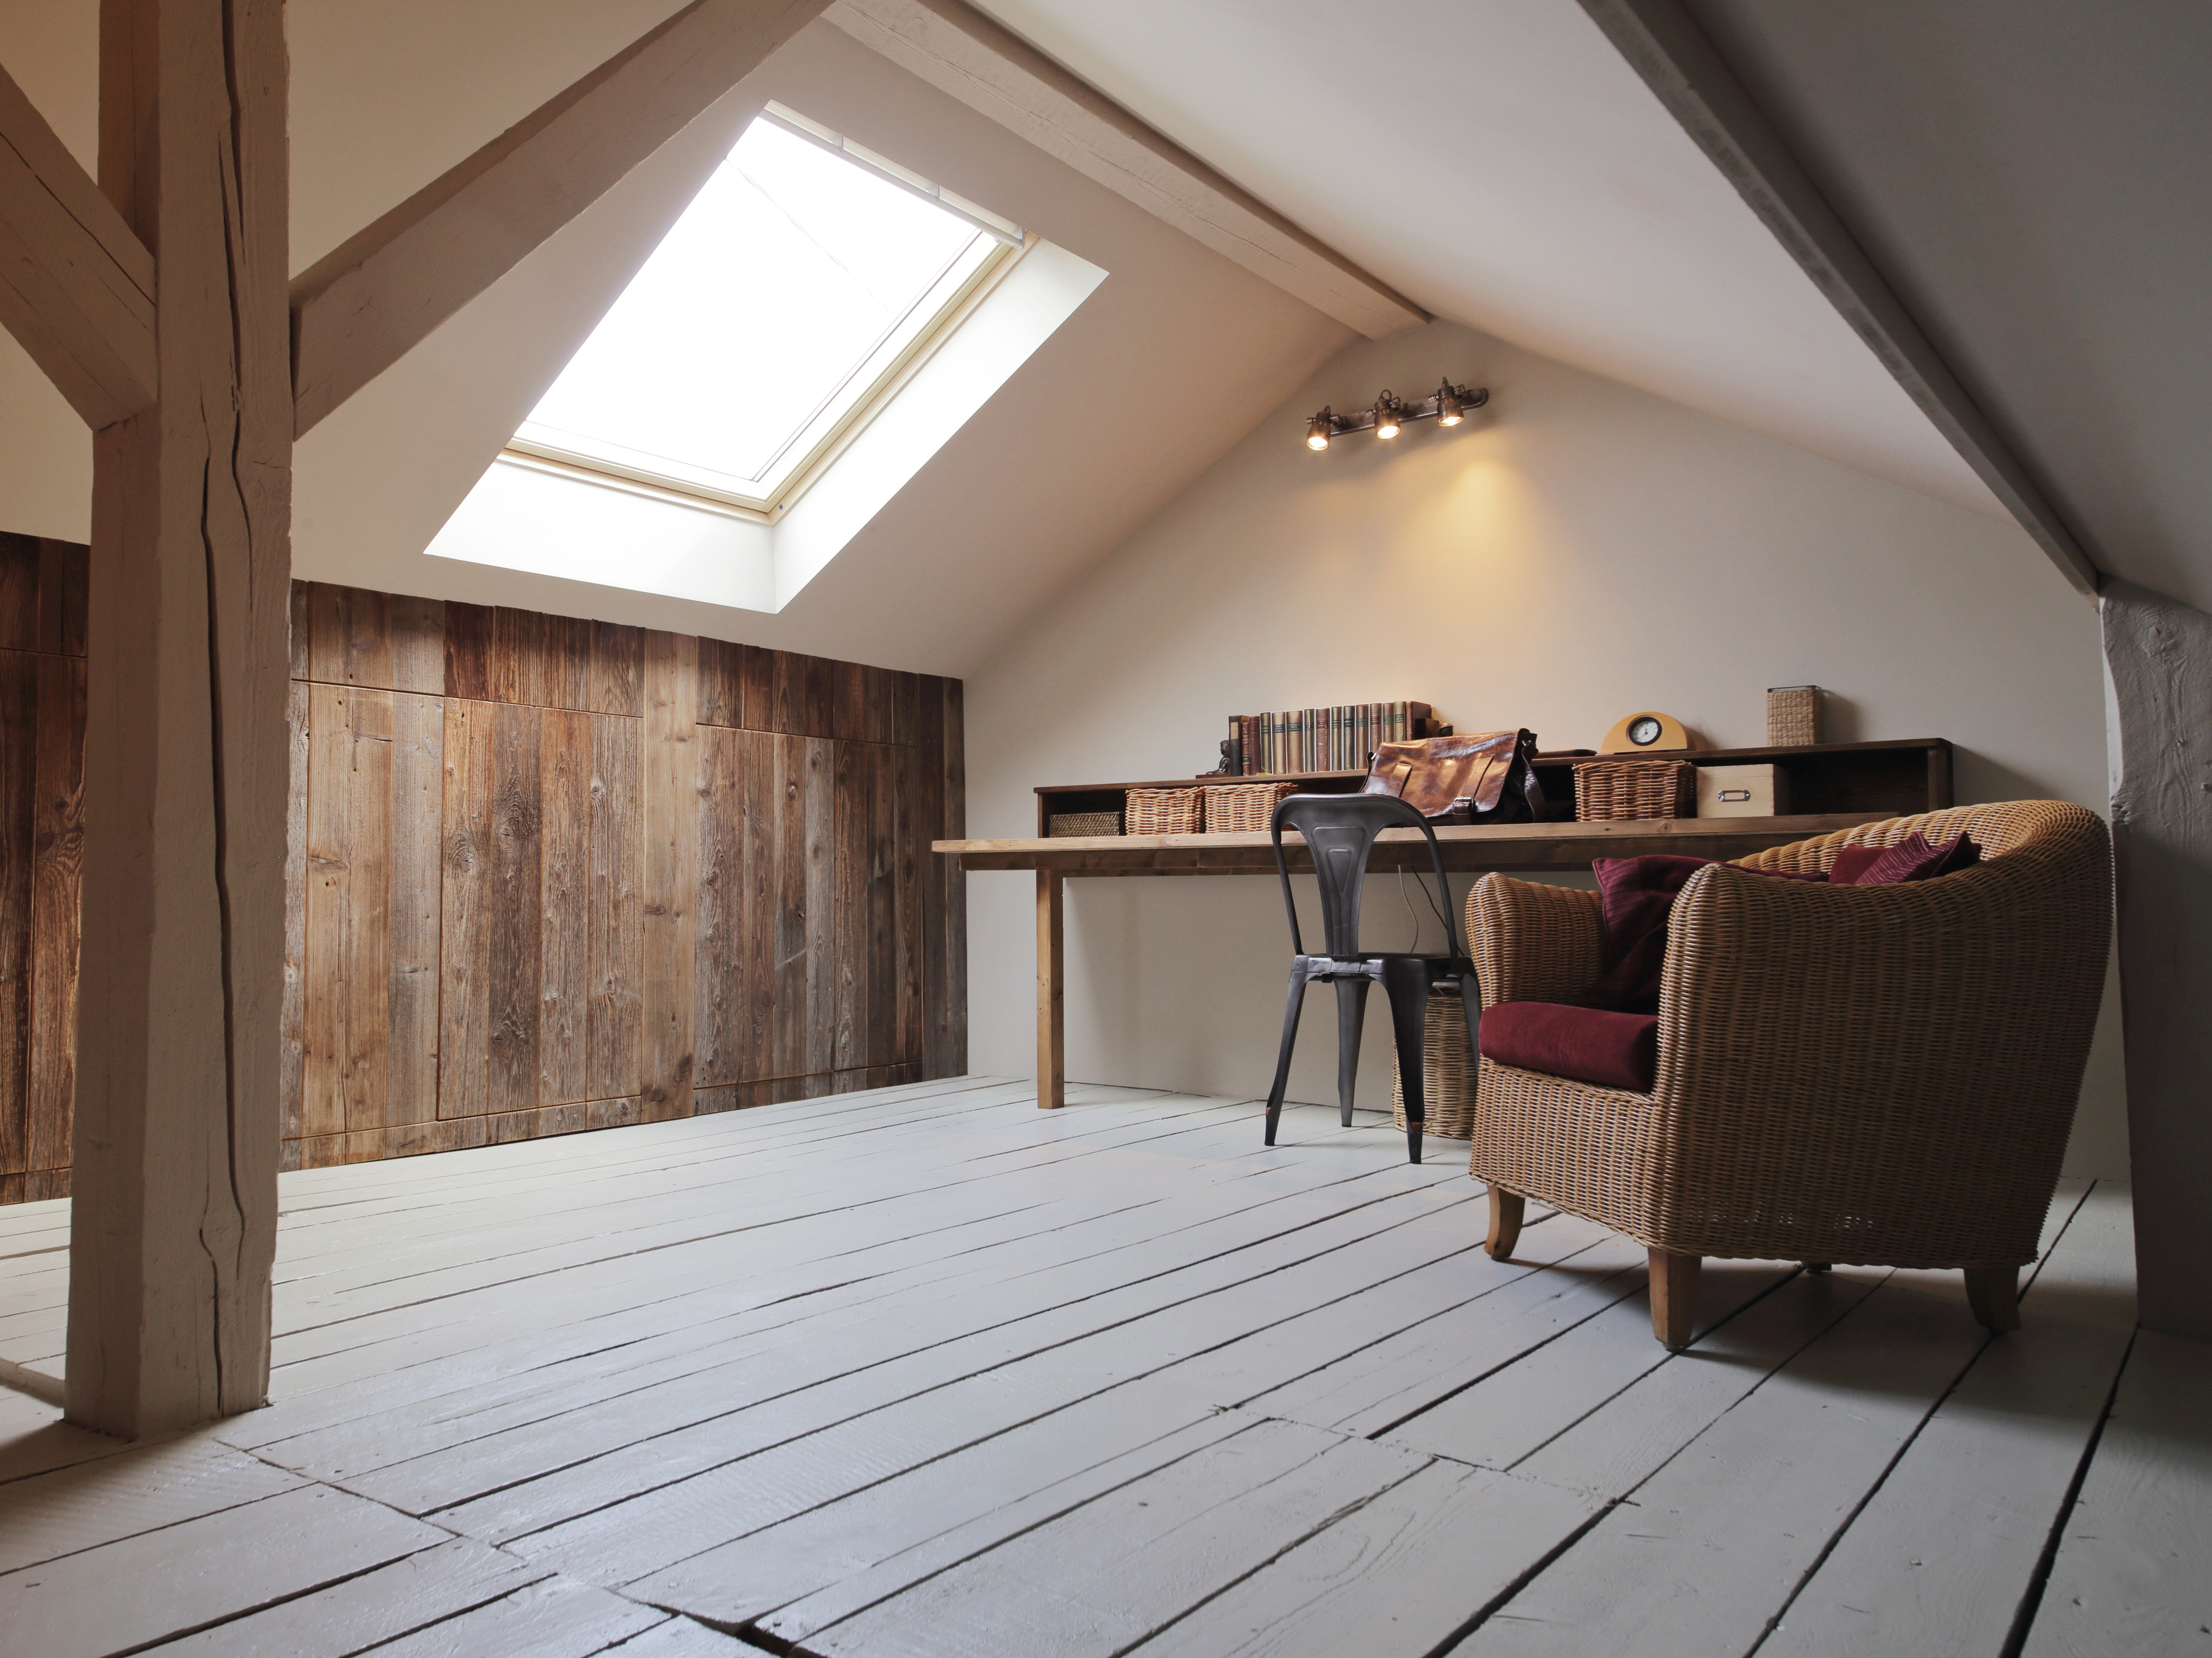 Living space in the attic